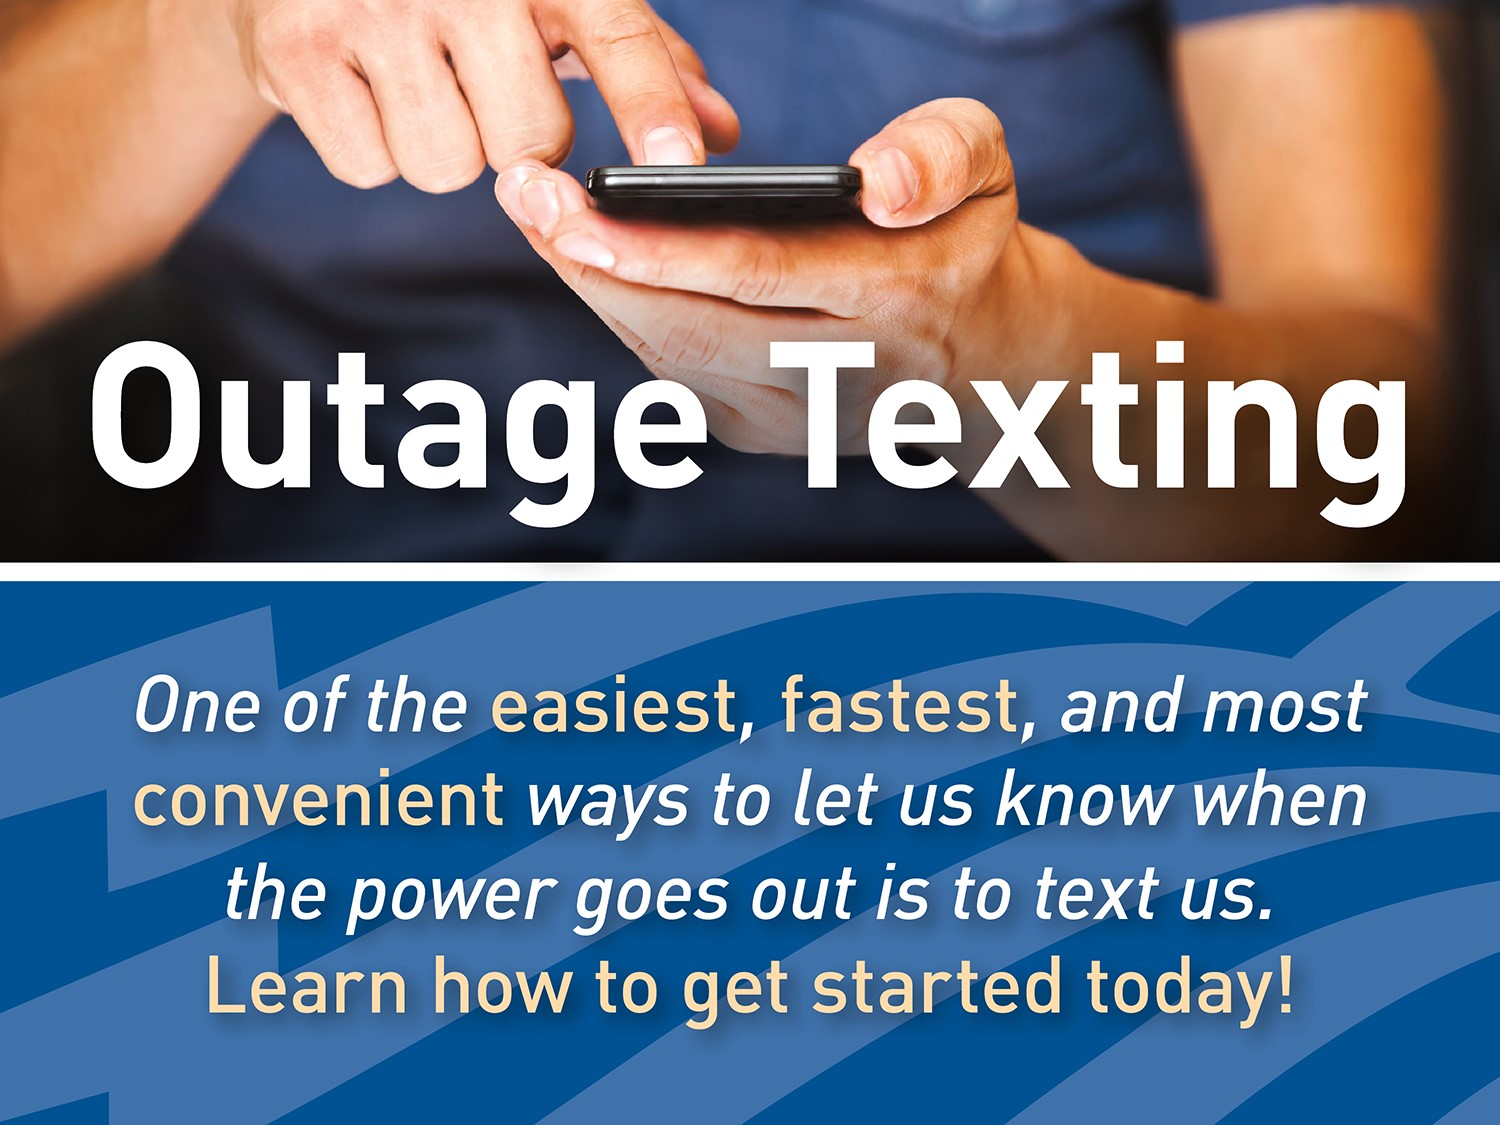 Outage Texting Introduction